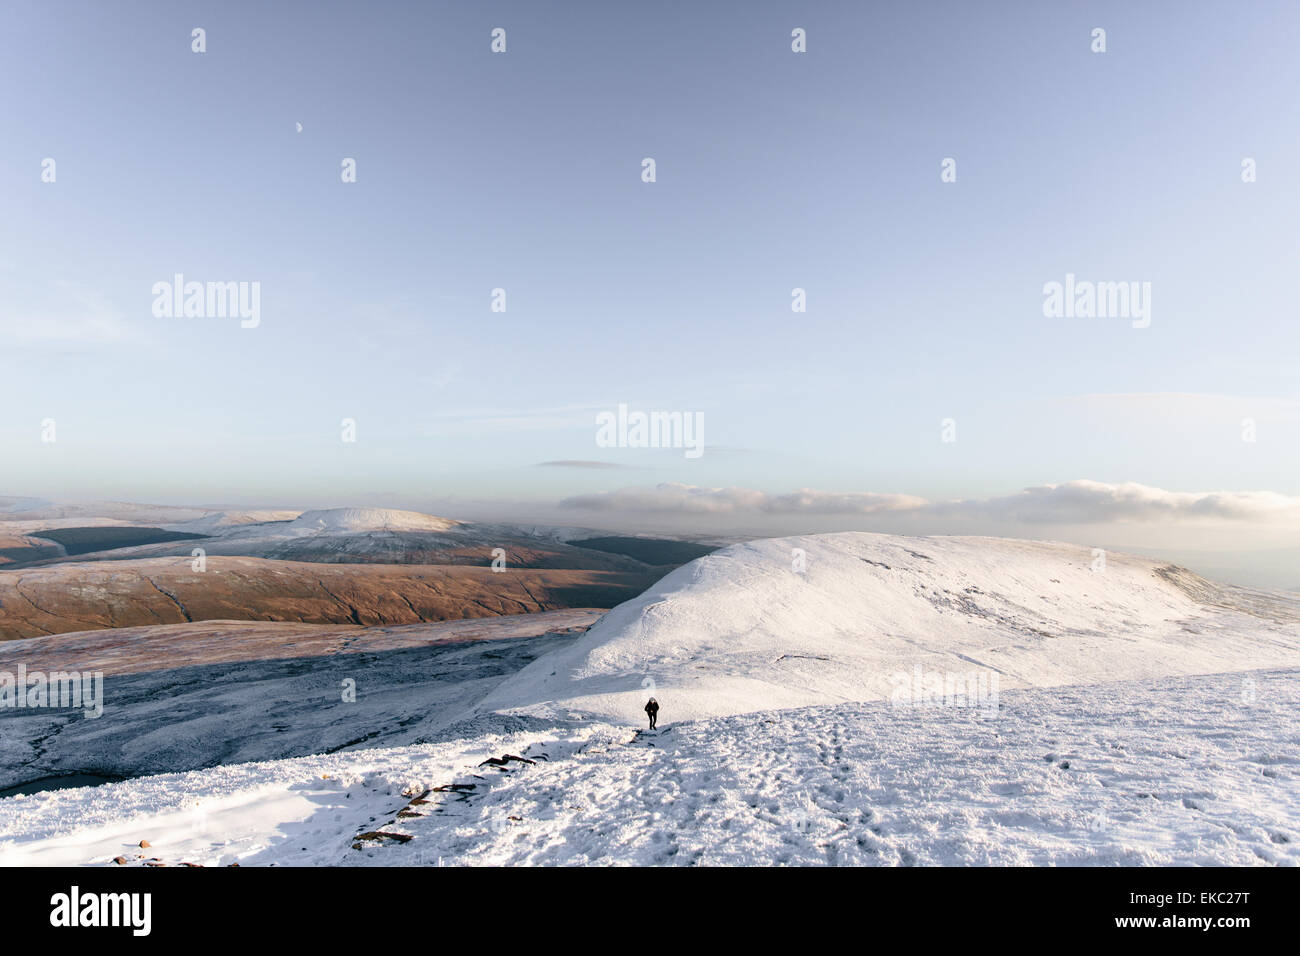 Person hiking in distance, Llyn y Fan Fach, Brecon Beacons, Wales - Stock Image